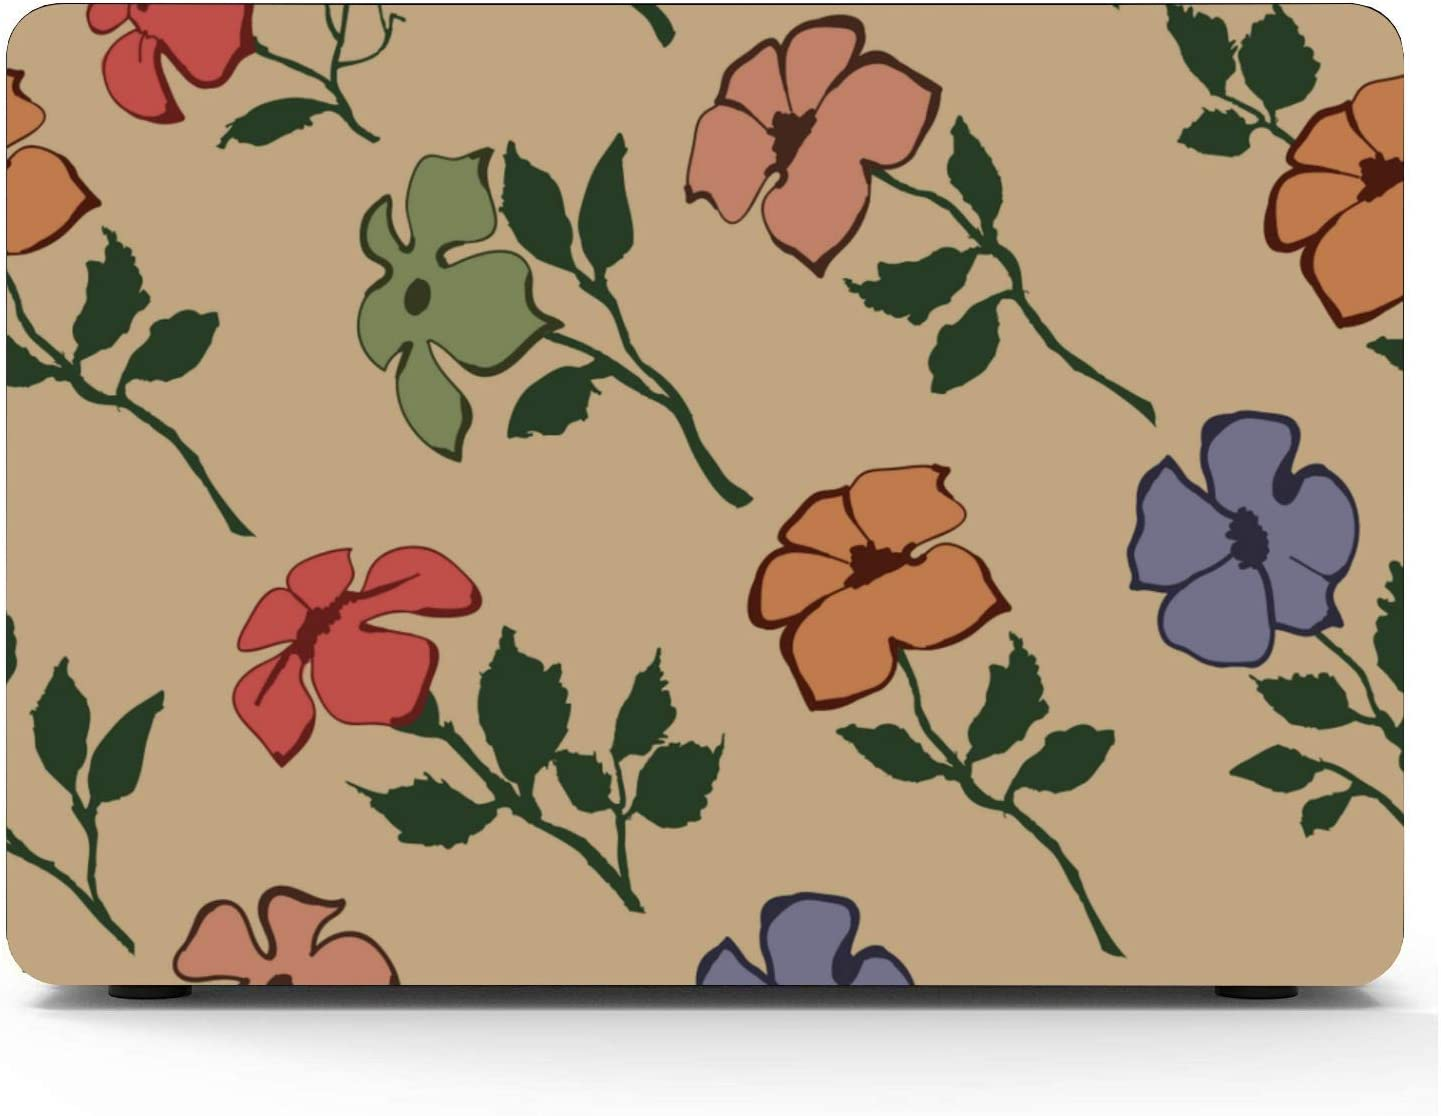 Mac Book Air Covers Casual Flowers Free Little Pretty Plastic Hard Shell Compatible Mac Air 11 Pro 13 15 Laptop Hard Cover Protection for MacBook 2016-2019 Version